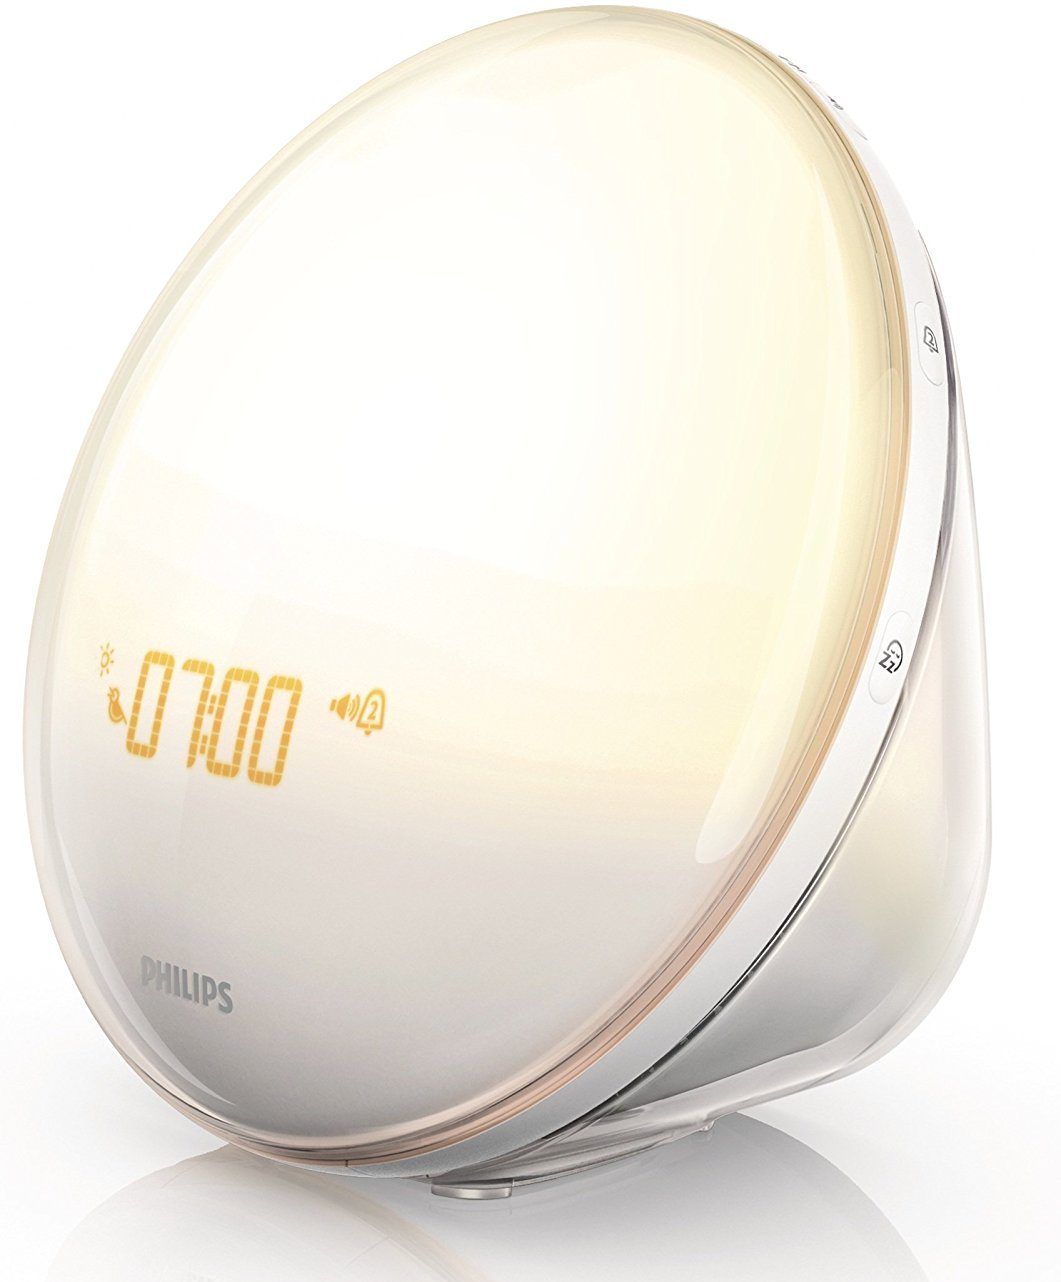 phillips sunrise alarm clock